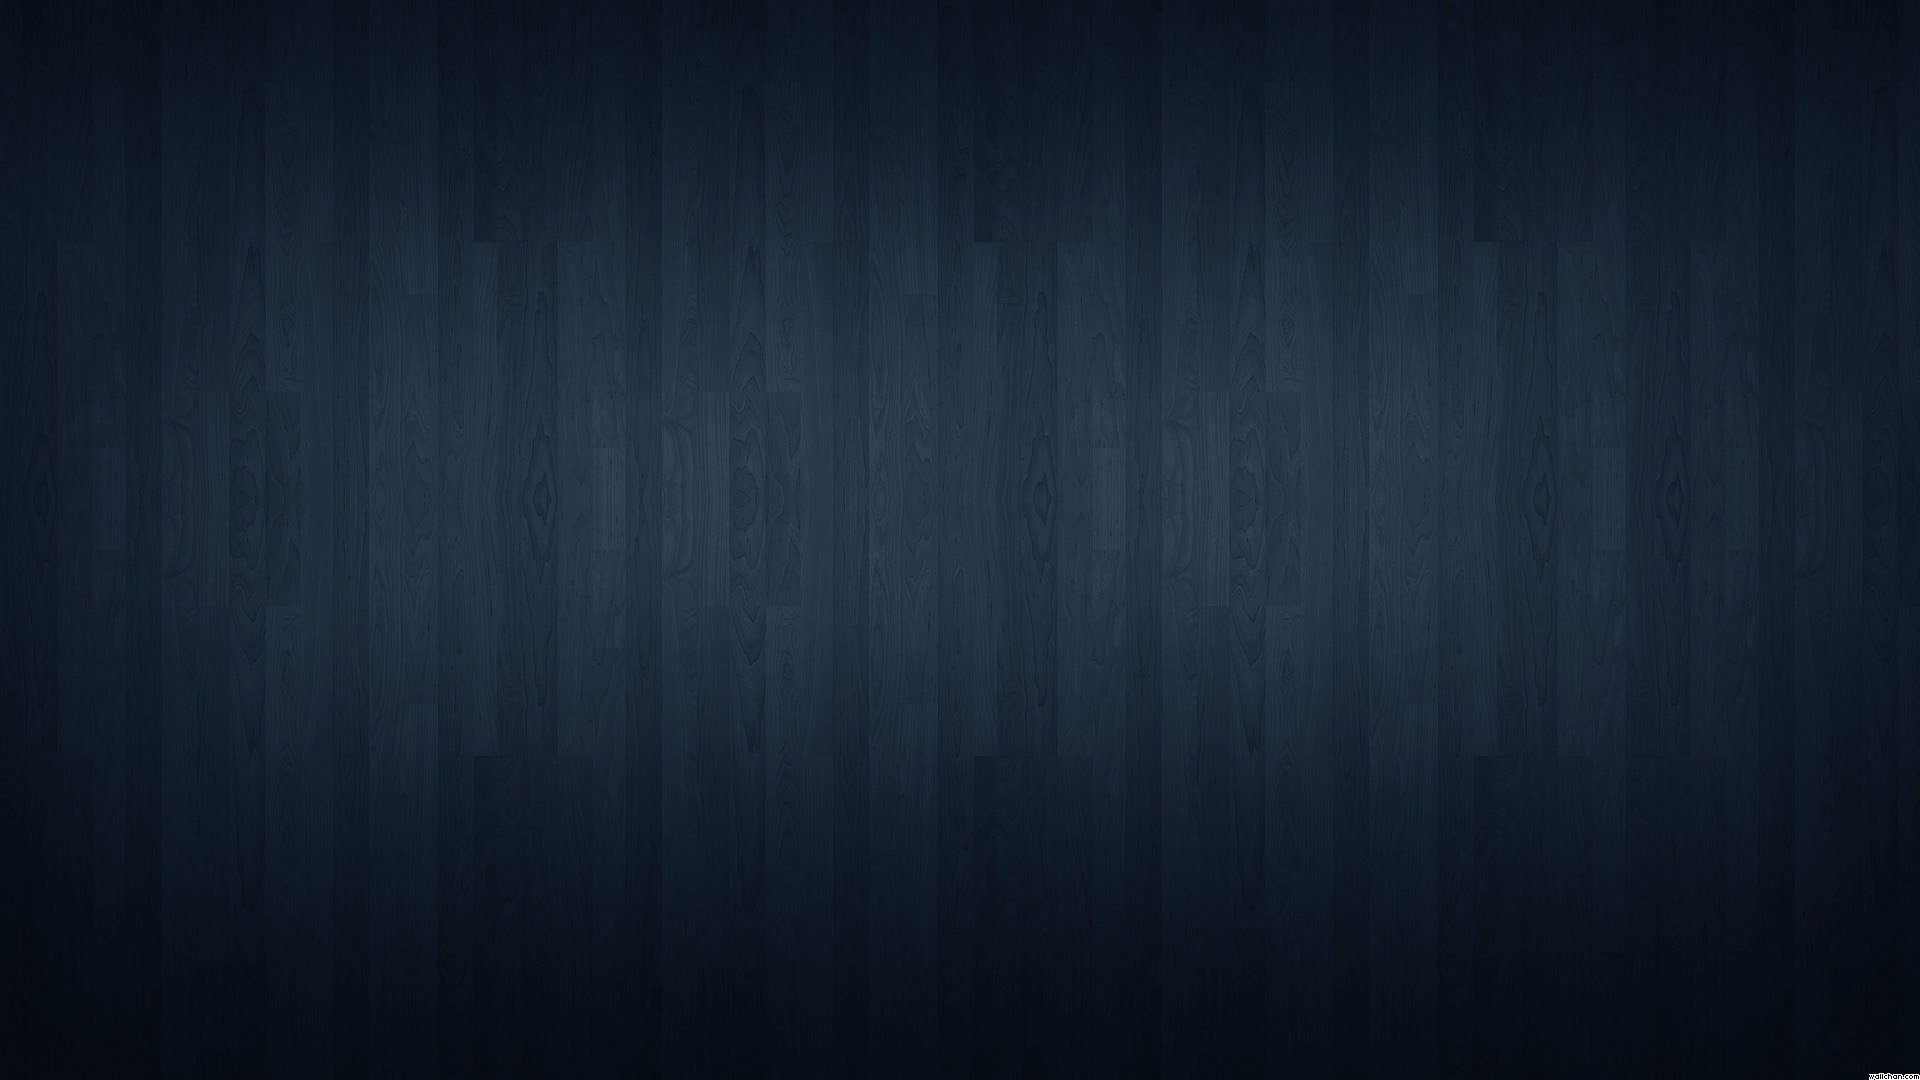 Dark Blue Wood Floor Background Wallpaper